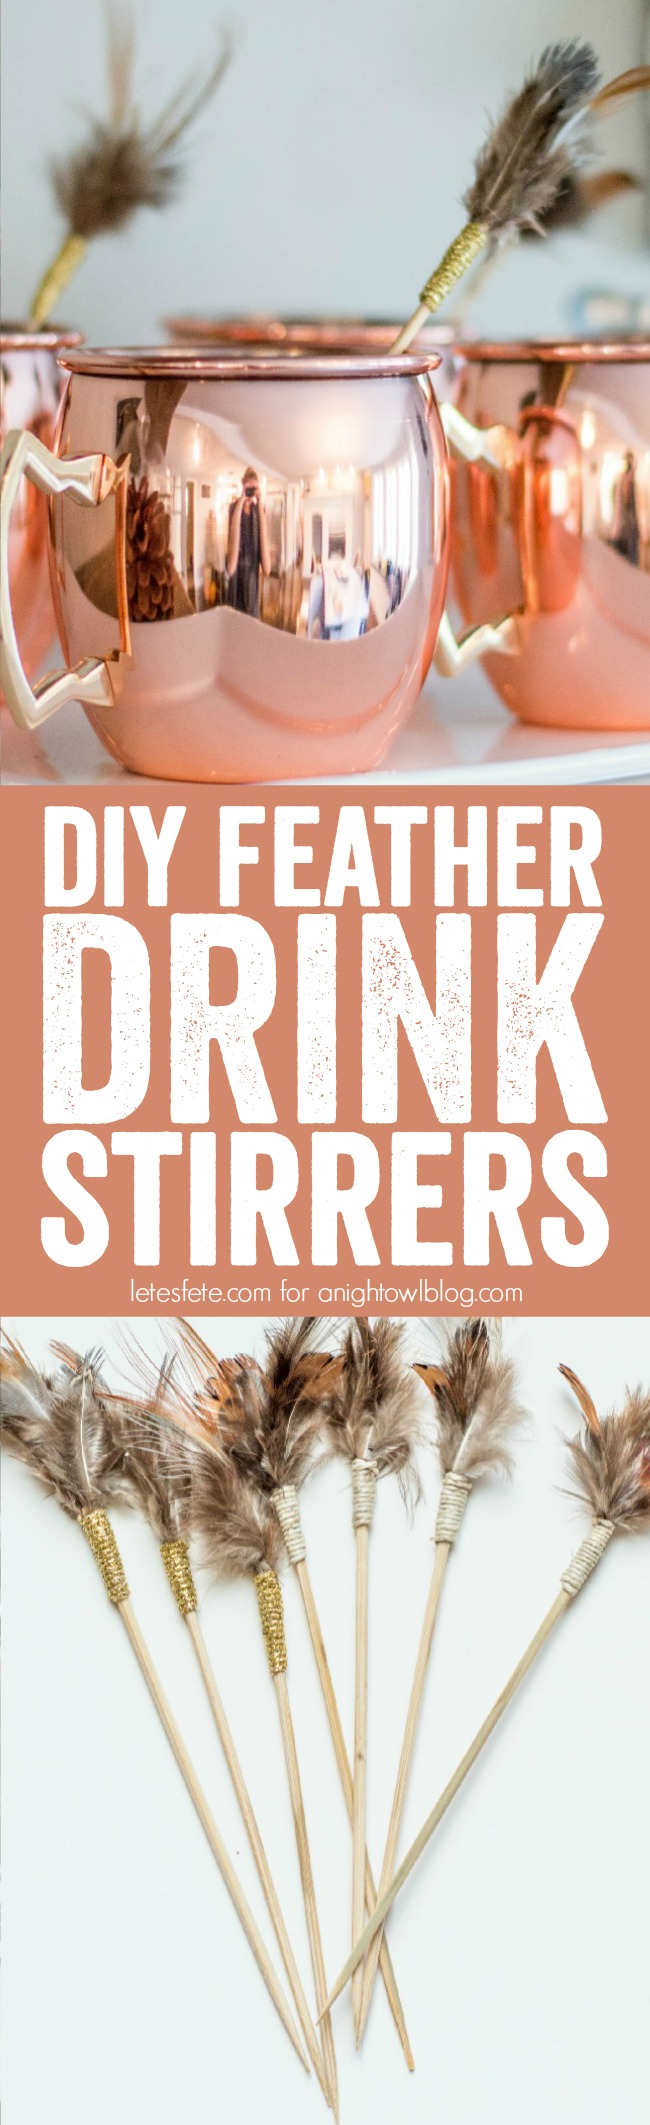 Add a little flair to your holiday cocktails this season with these fabulous DIY Feather Drink Stirrers!